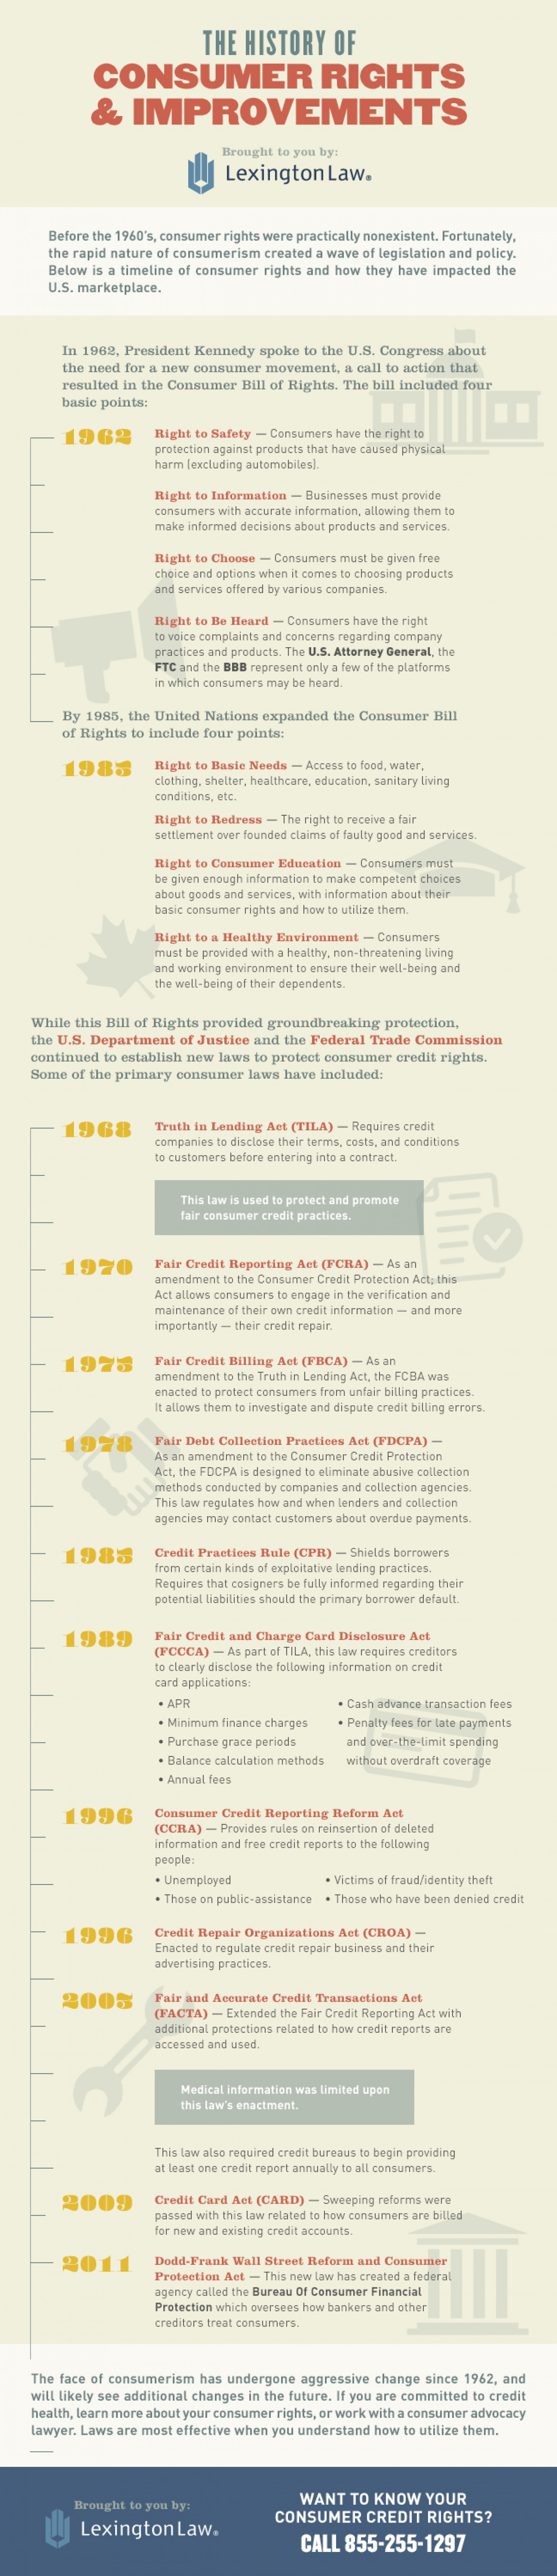 The History of Consumer Rights & Improvements Infographic